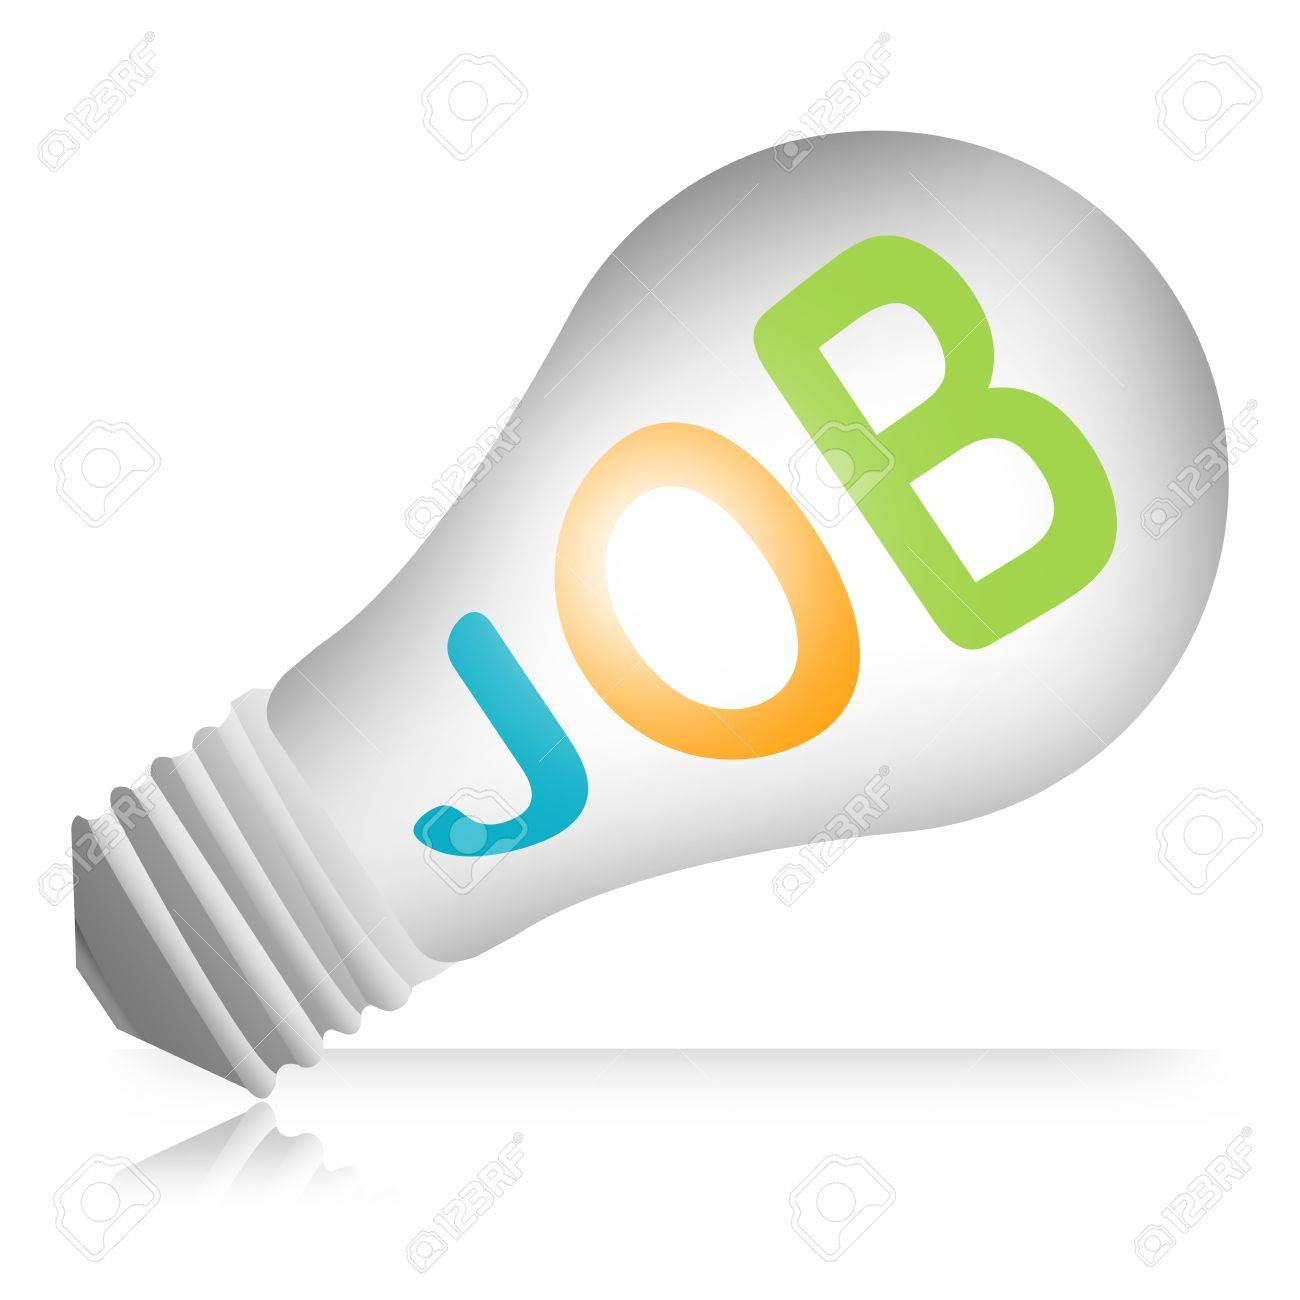 3d Light Bulb Job For Job Seeker Campaign Isolated on White Background Stock Photo - 17455064